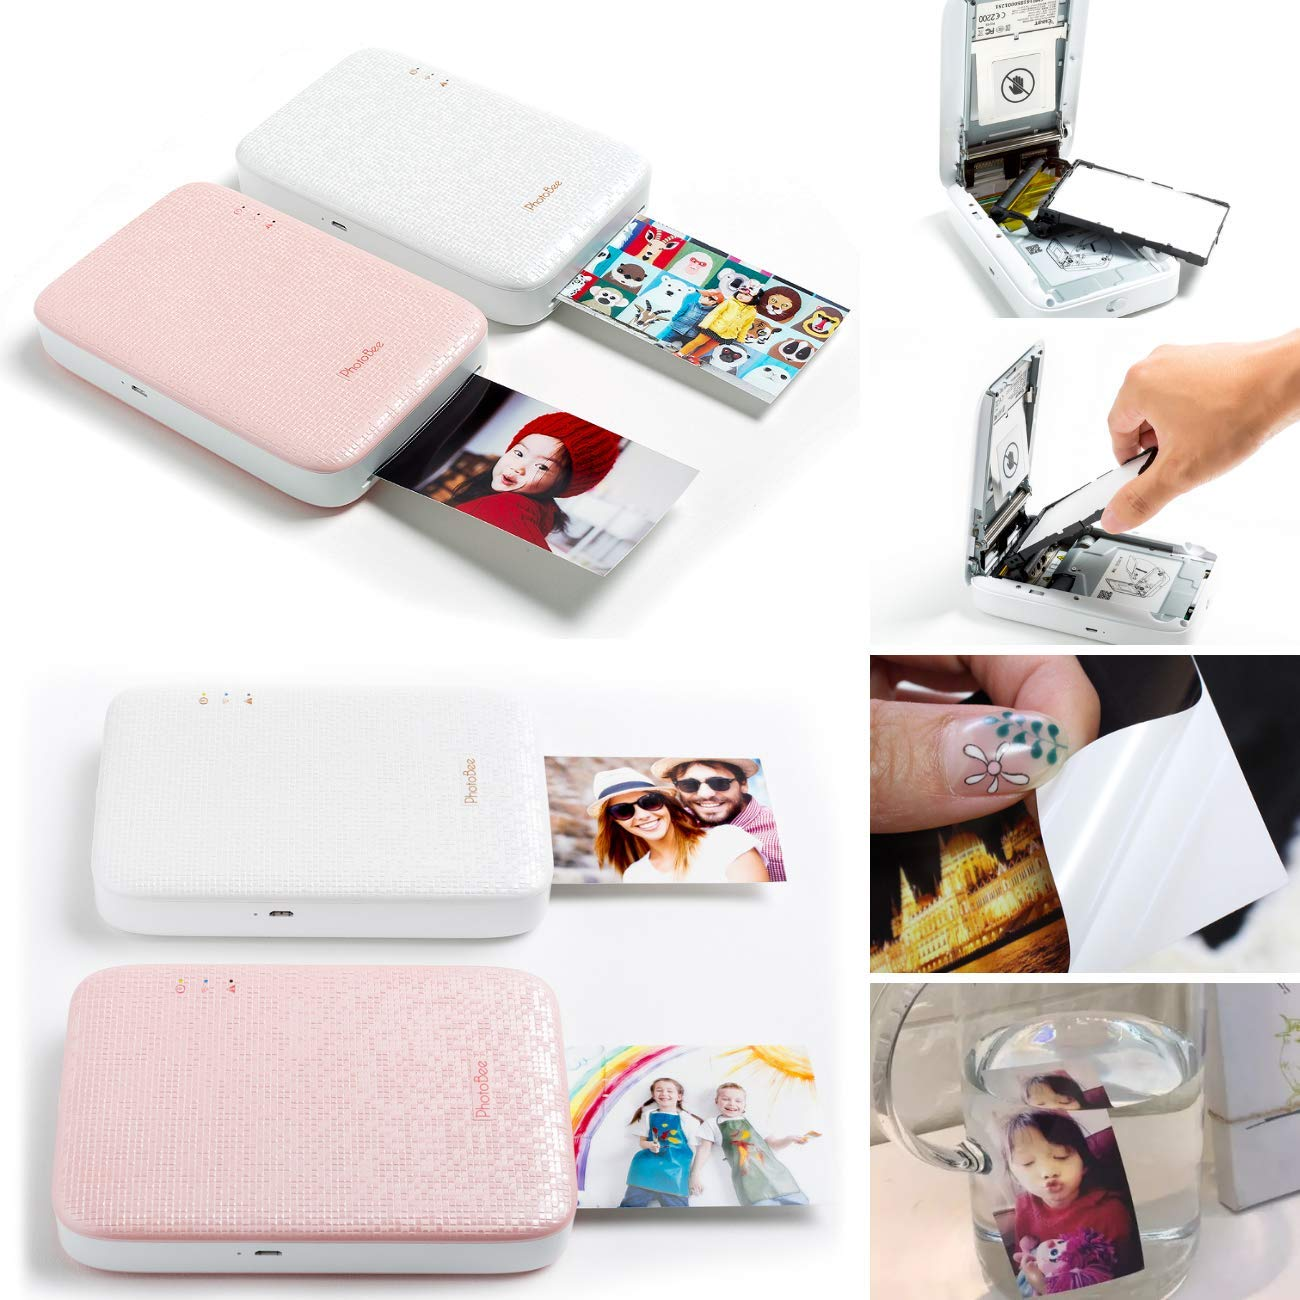 PhotoBee Portable Sticker Photo Printer Party Package - Pink (Photo Printer Set with 48 Sheets of Sticky Backed Photo Paper, 30 Sparkling Frames, 1 Metal Photo Tree with Clips) by PHOTOBEE (Image #2)